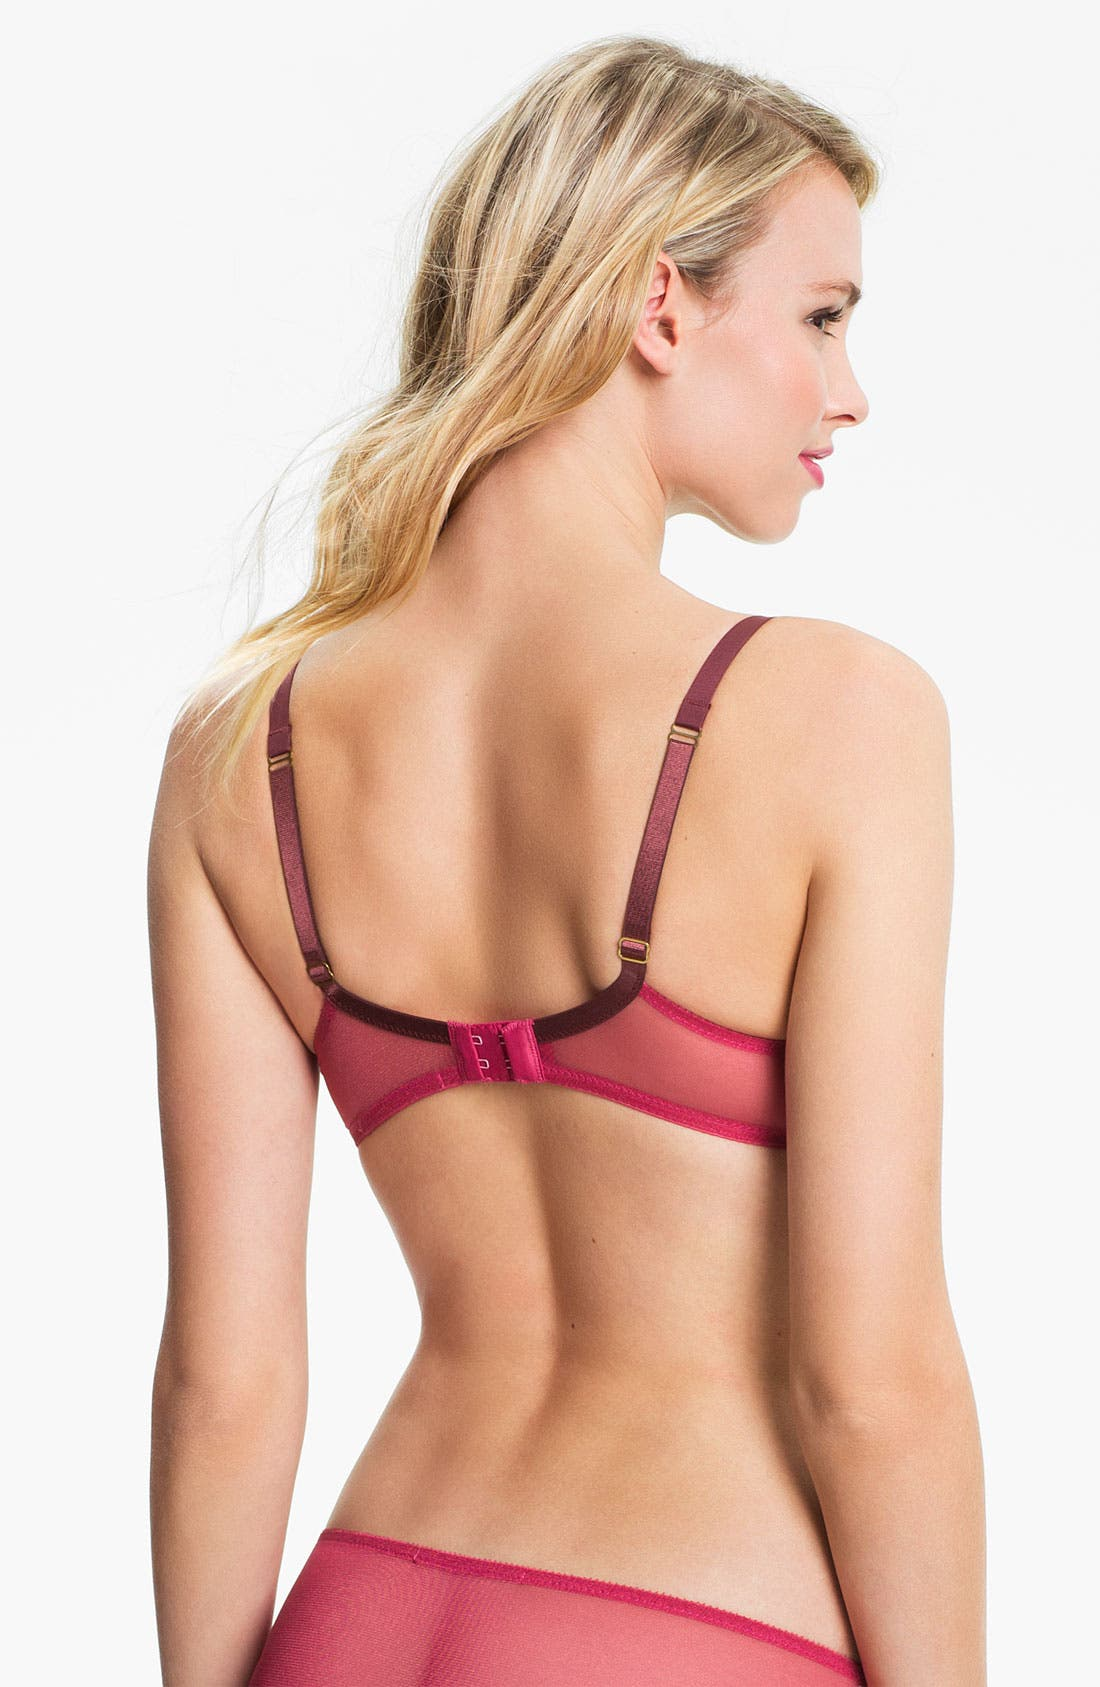 Alternate Image 2  - Stella McCartney 'Cherie Sneezing' Underwire Balconette Bra